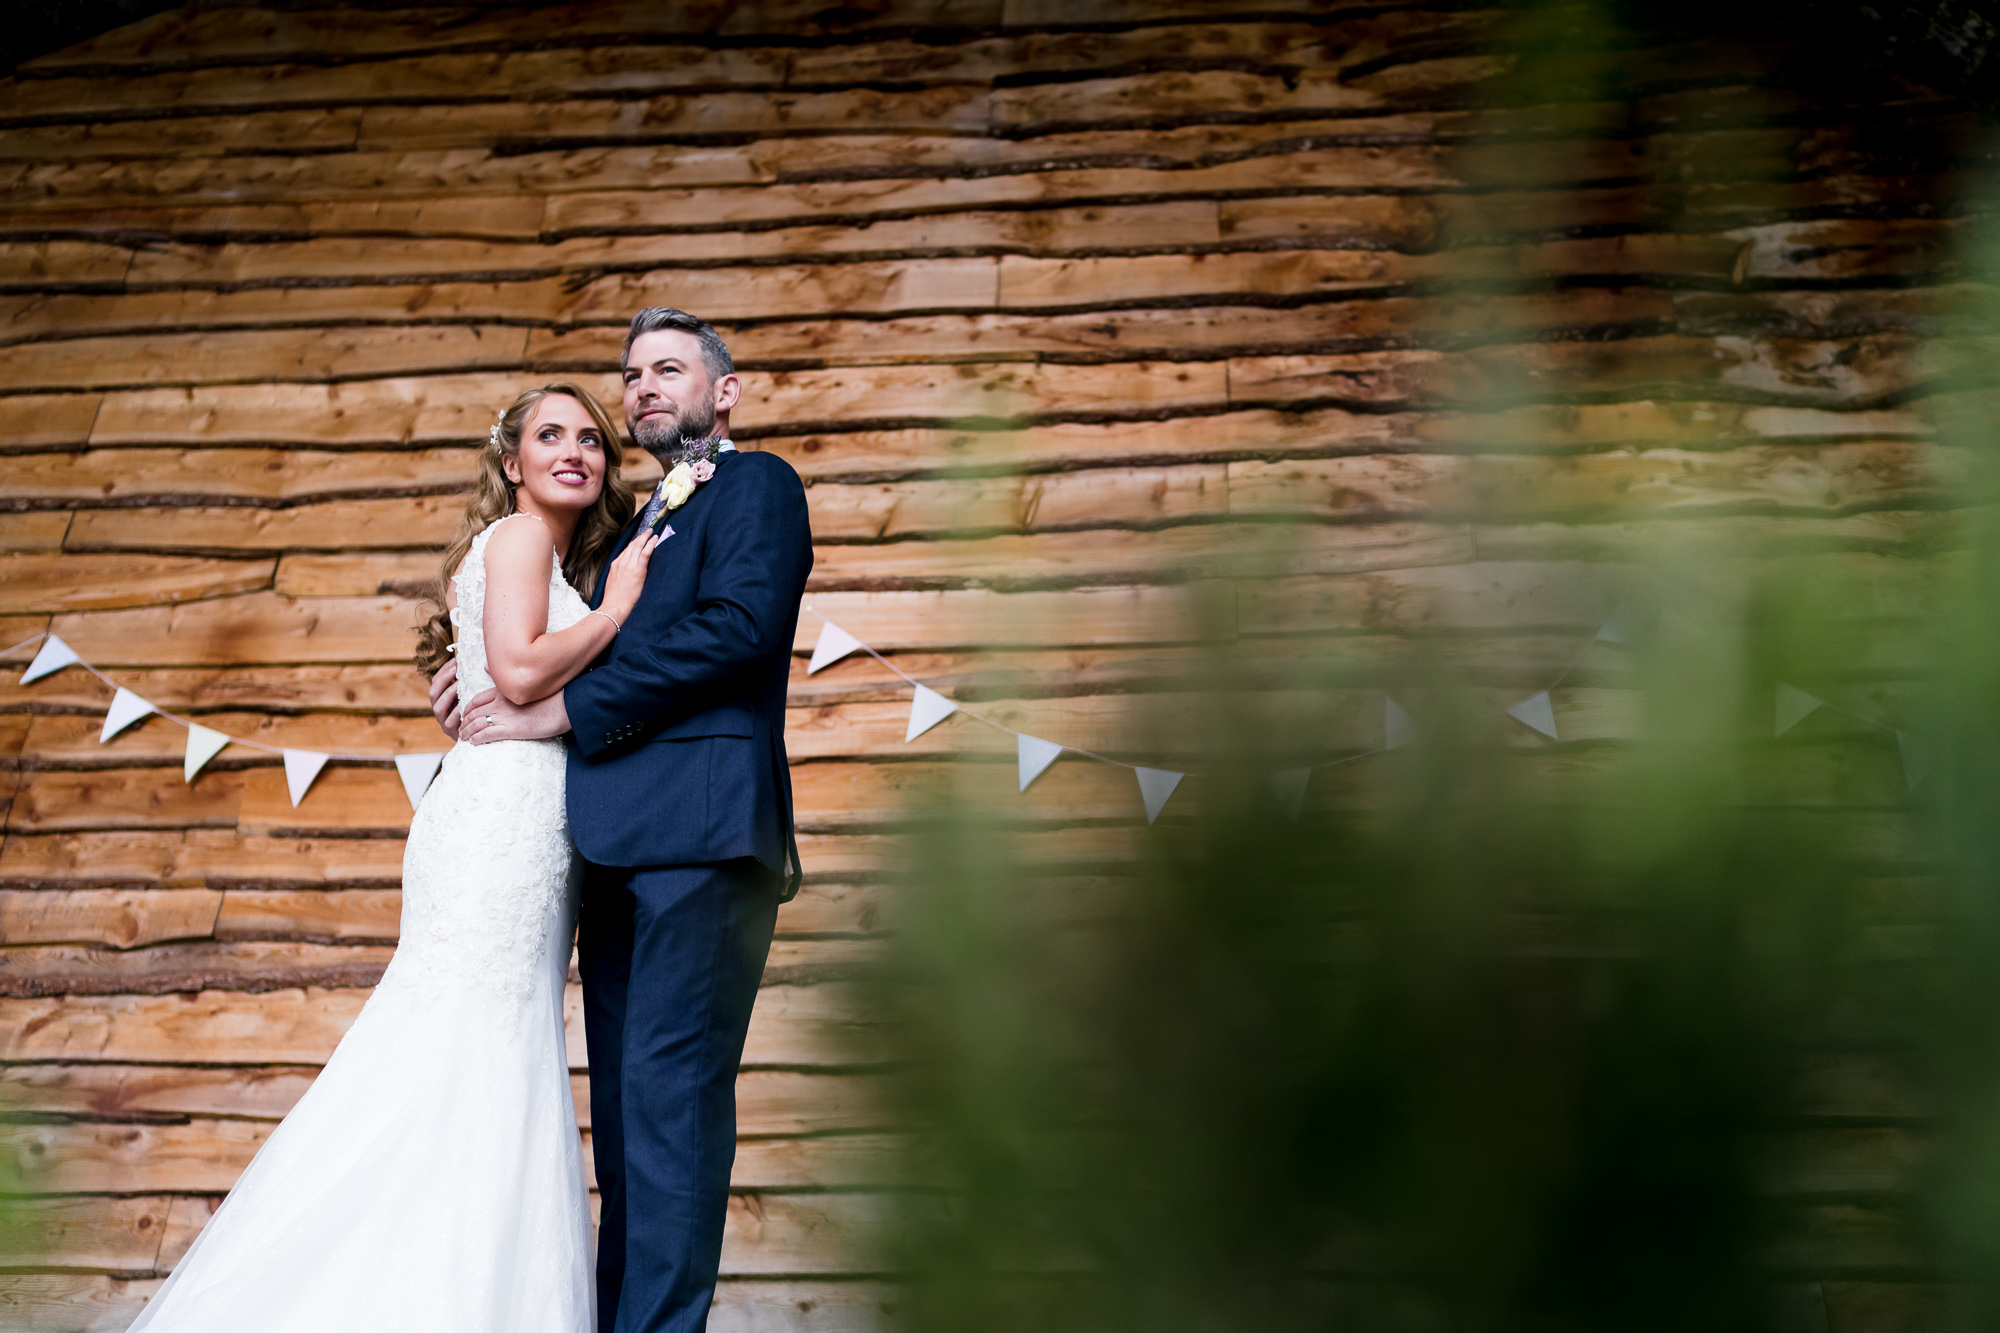 Tower Hill Barn Wedding Photographer based in north west england (2 of 7).jpg